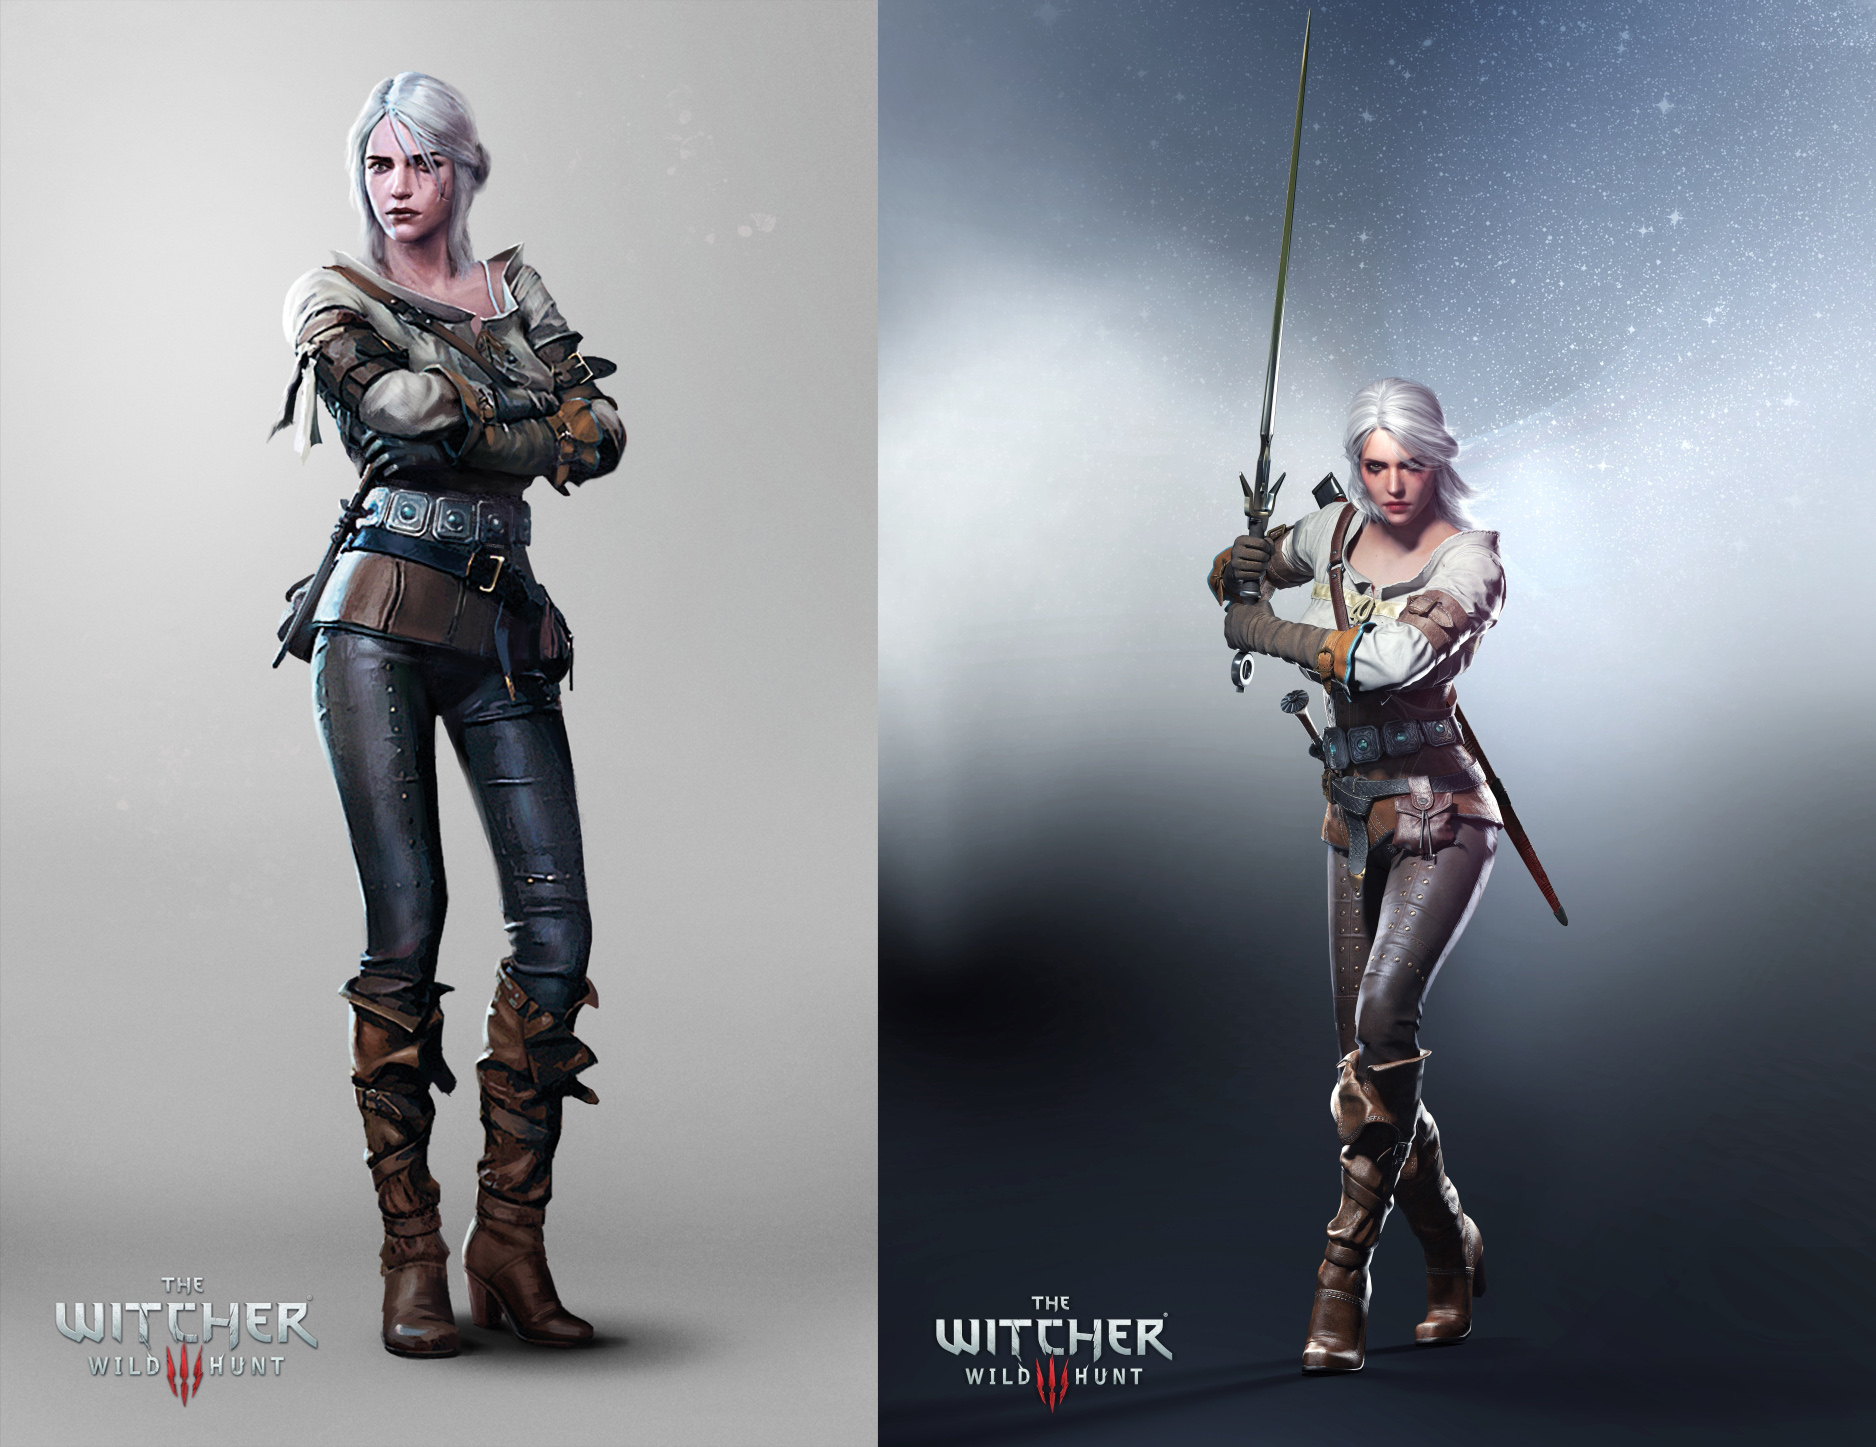 http://www.gamer.ru/system/attached_images/images/000/678/463/original/83438_mdc5pbynom_the_witcher_3_wild_hunt_cir_2i.jpg